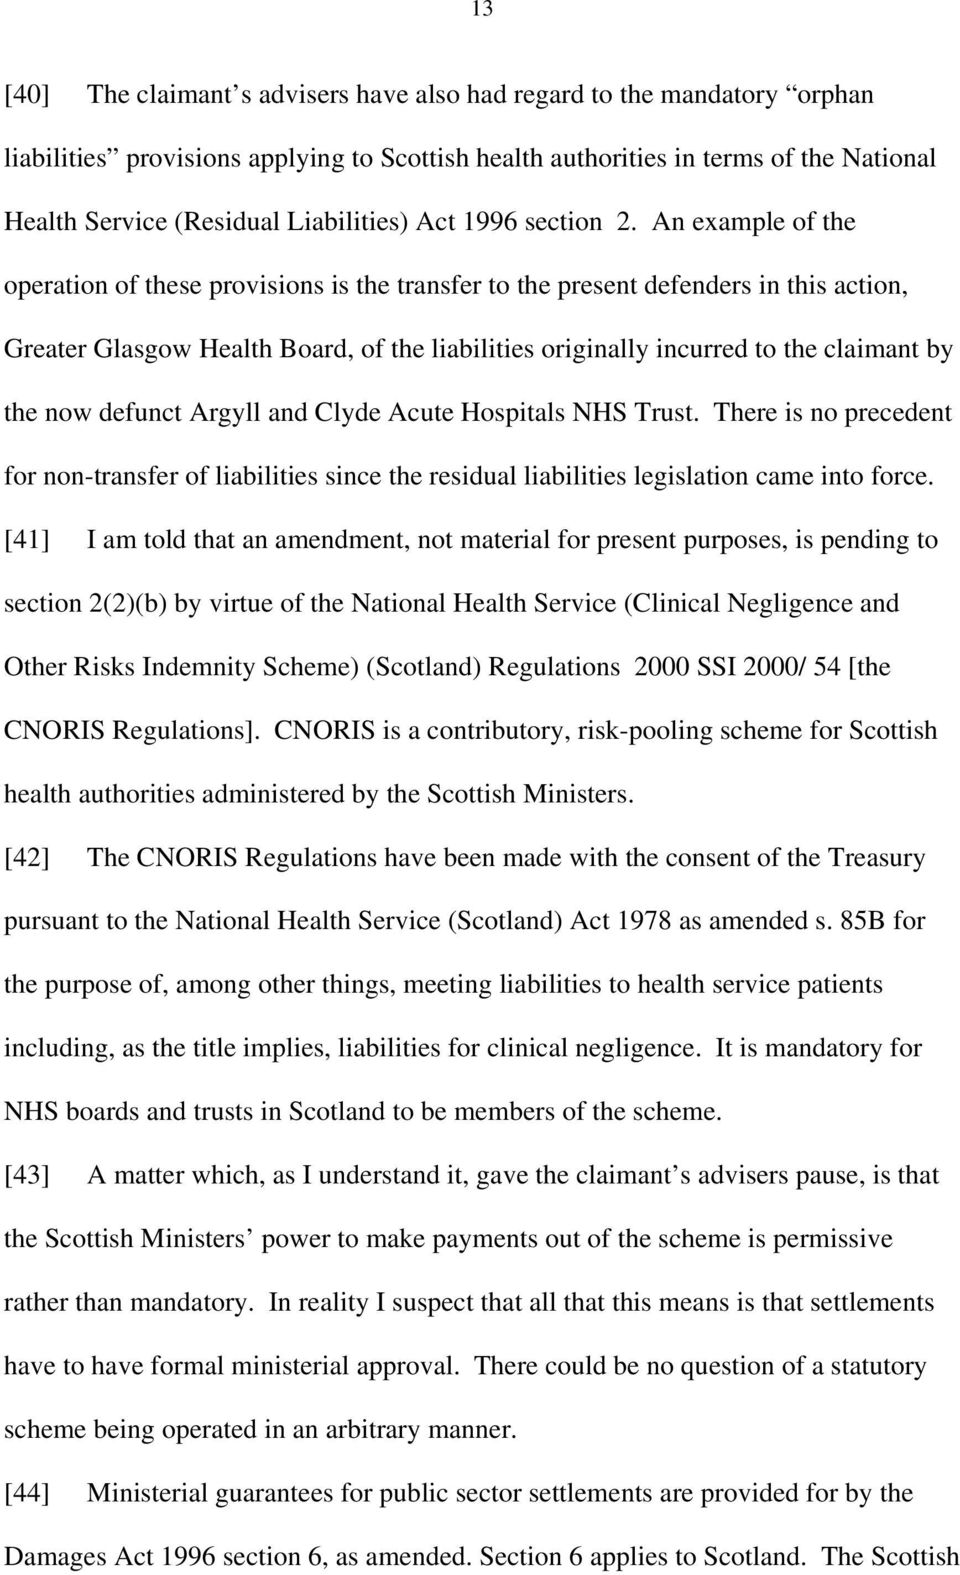 An example of the operation of these provisions is the transfer to the present defenders in this action, Greater Glasgow Health Board, of the liabilities originally incurred to the claimant by the